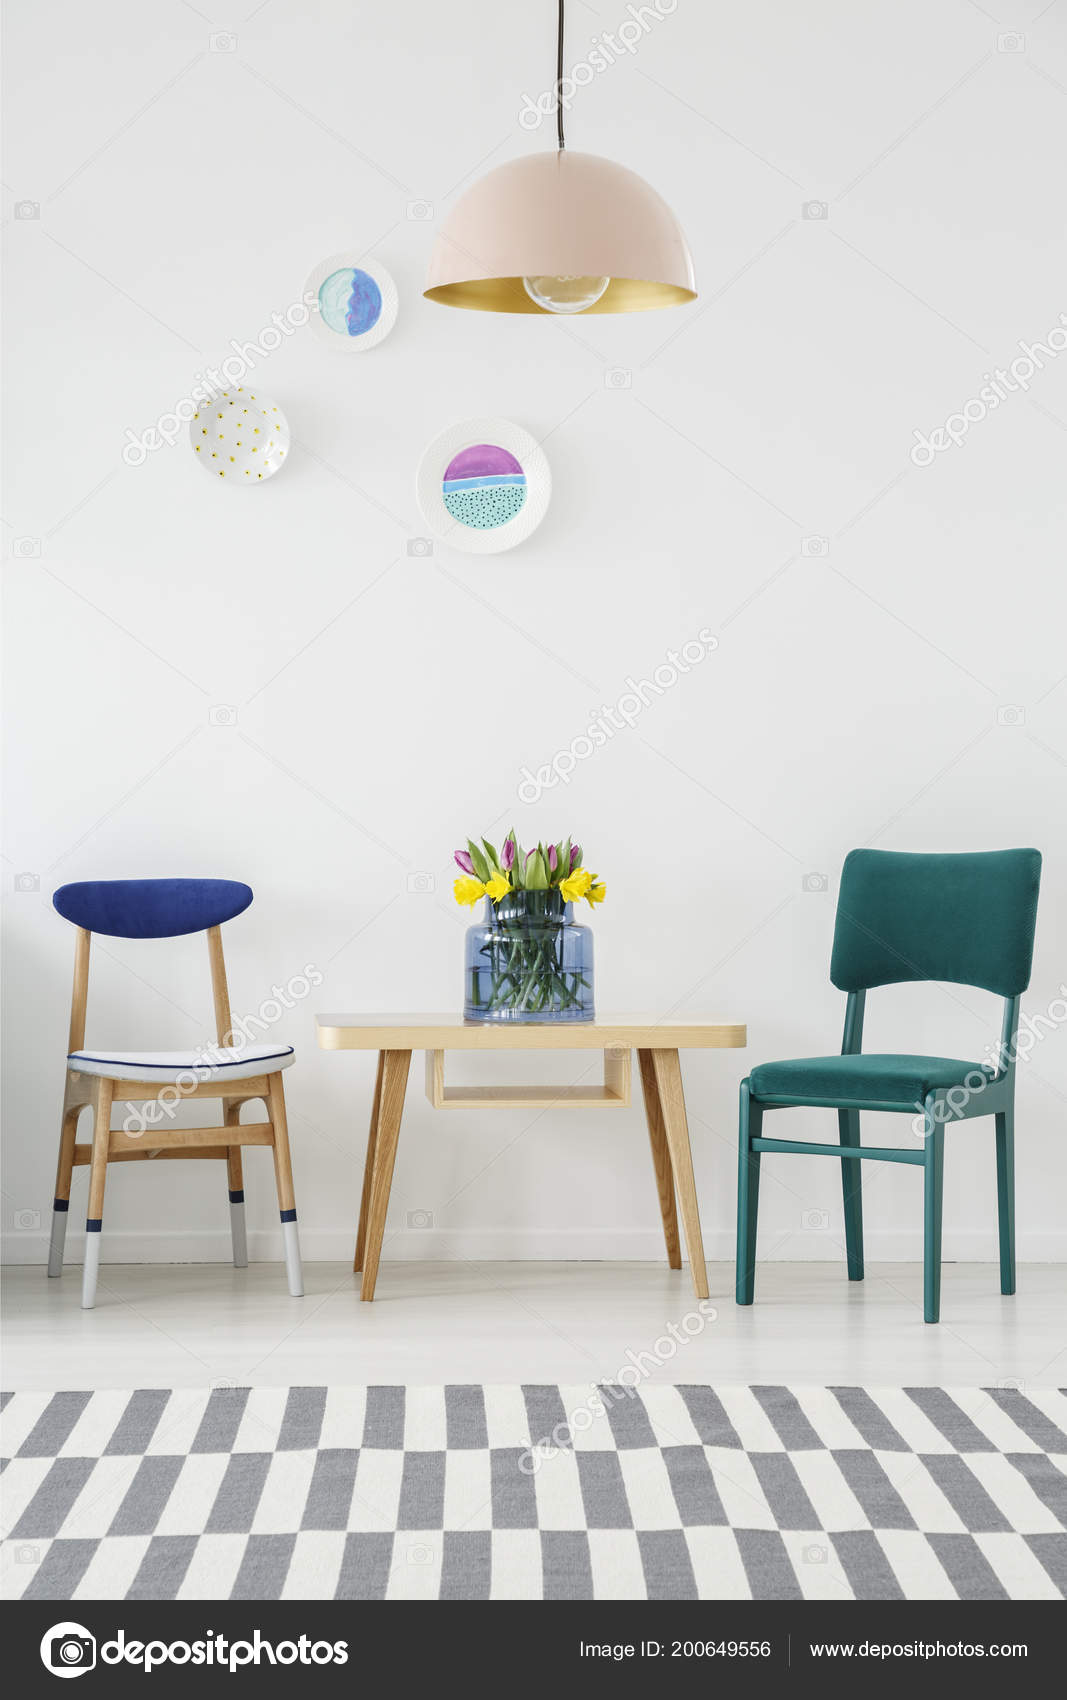 Turquoise Chair Next Wooden Table Flowers Pastel Lamp Dining Room Stock Photo